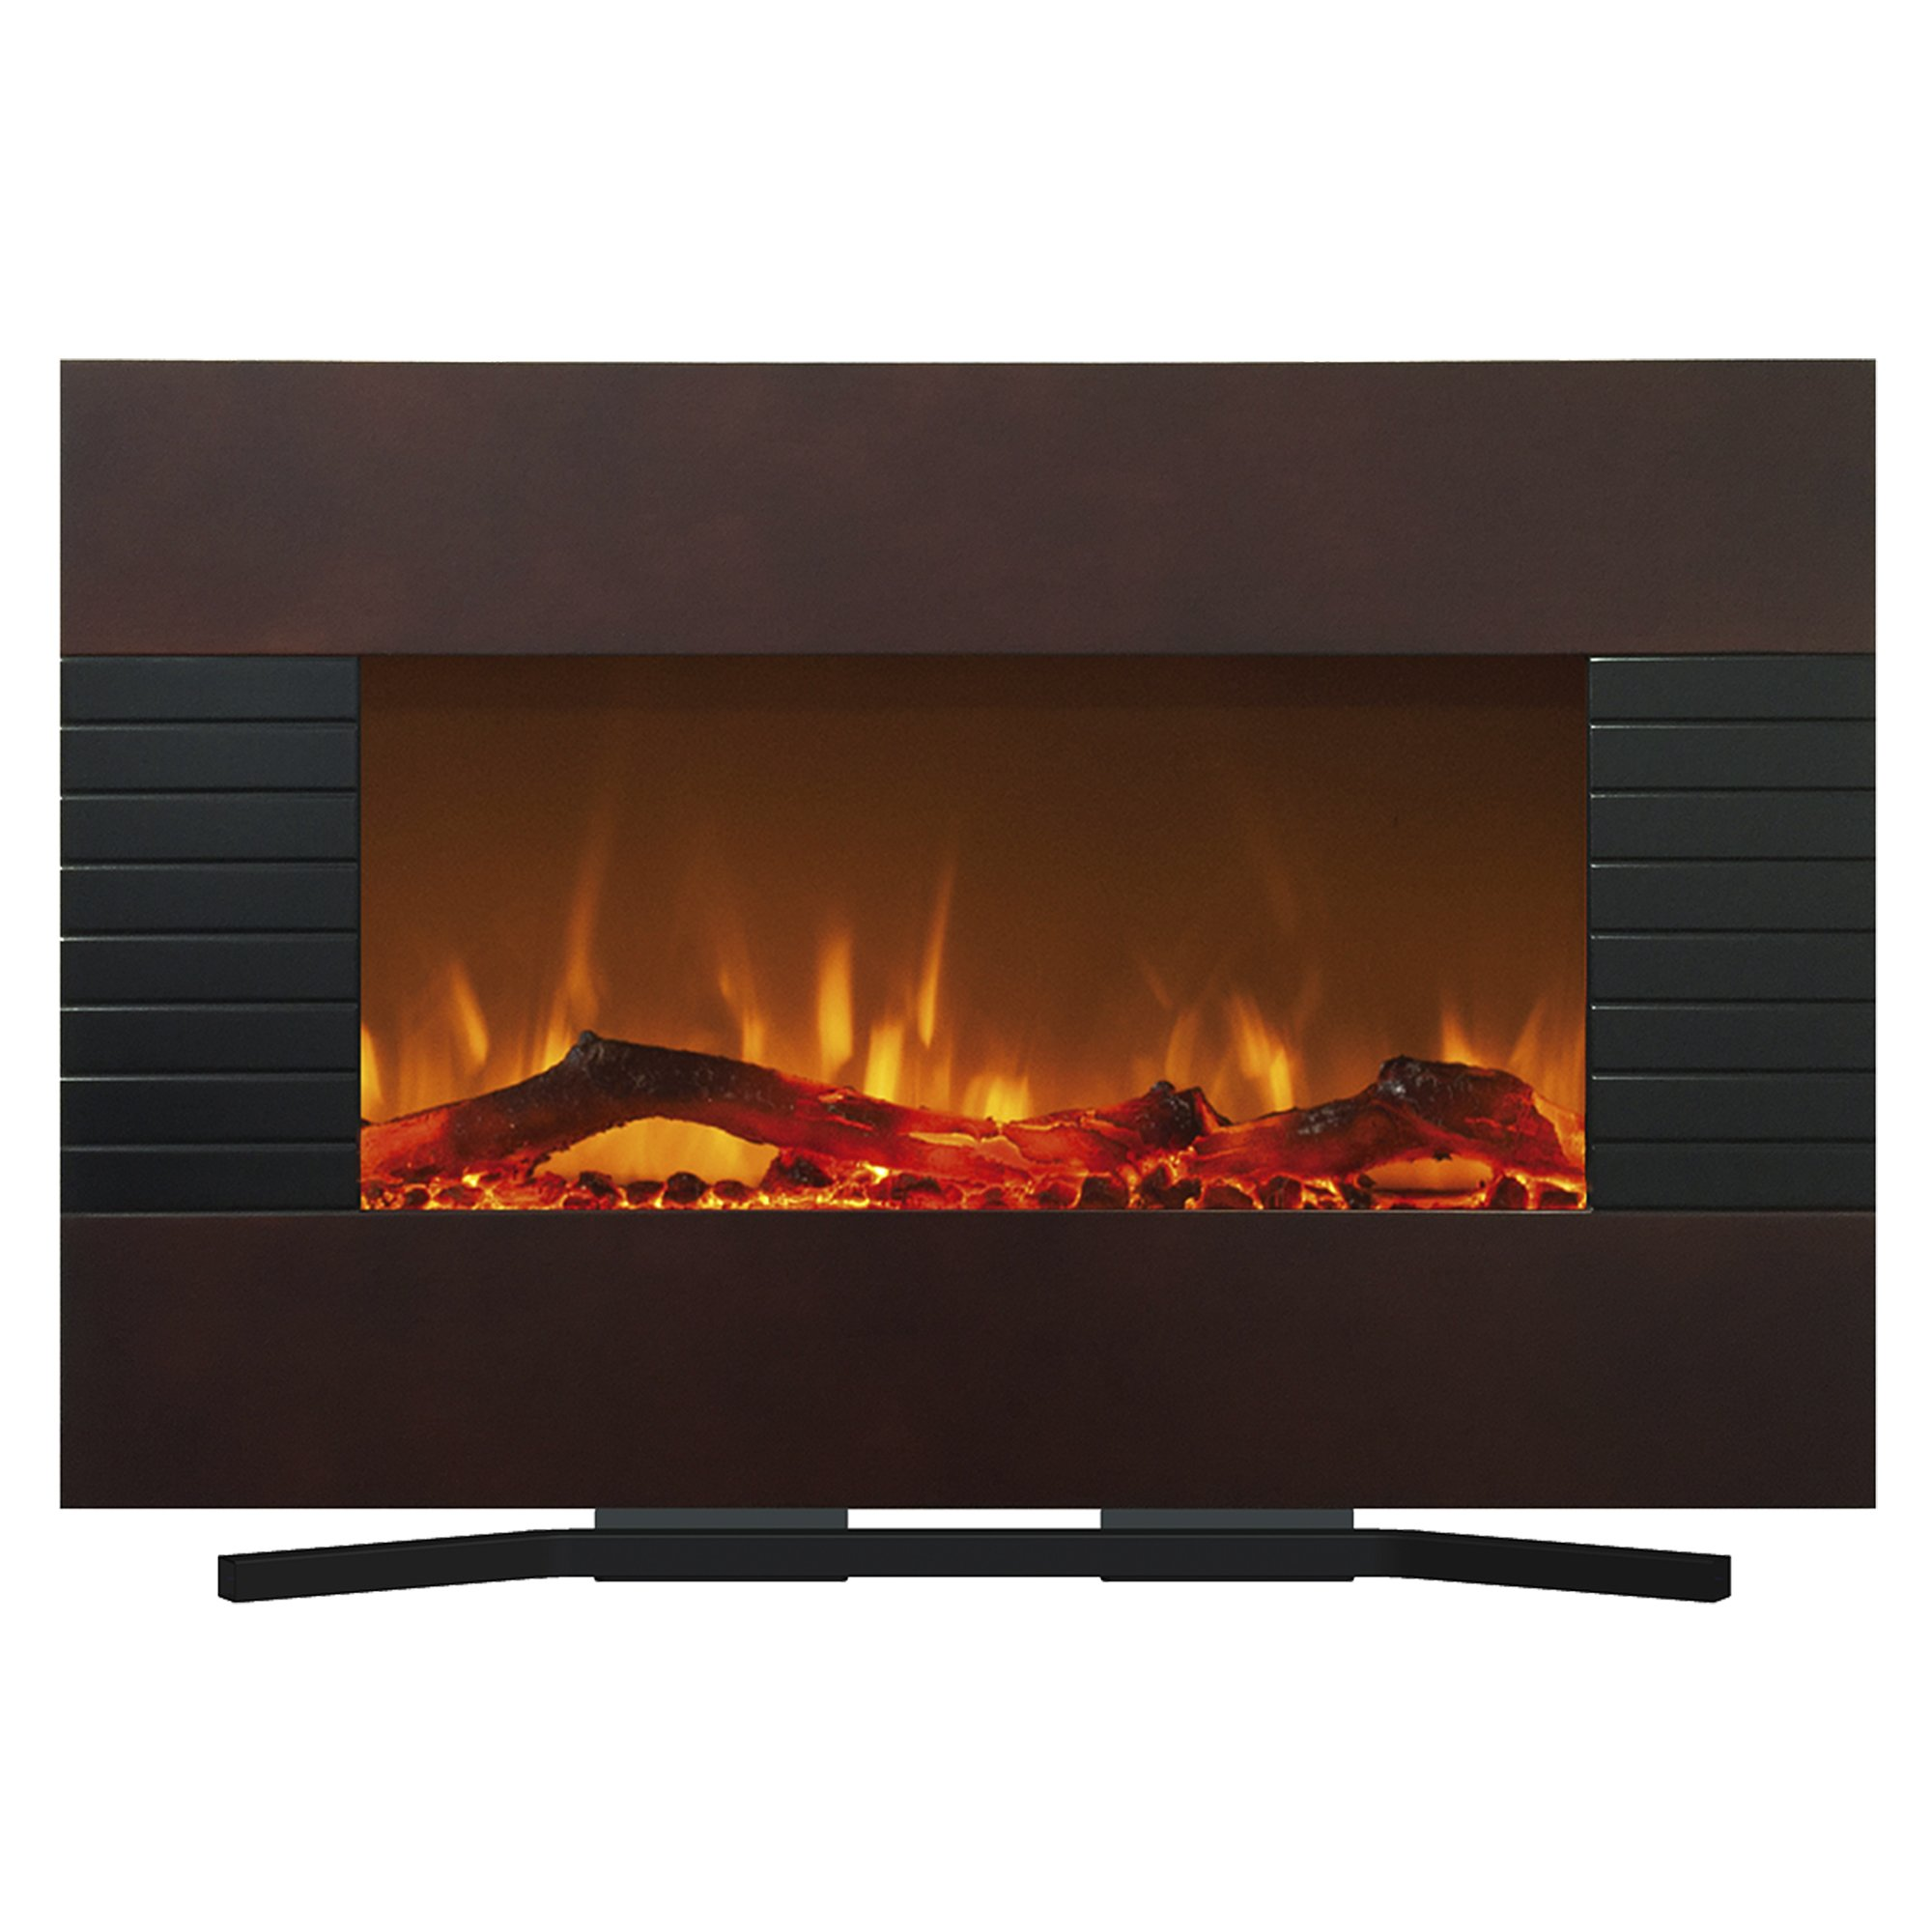 Northwest 80-422S Mahogany Fireplace With Wall Mount & Floor Stand, 36'' by Northwest (Image #3)